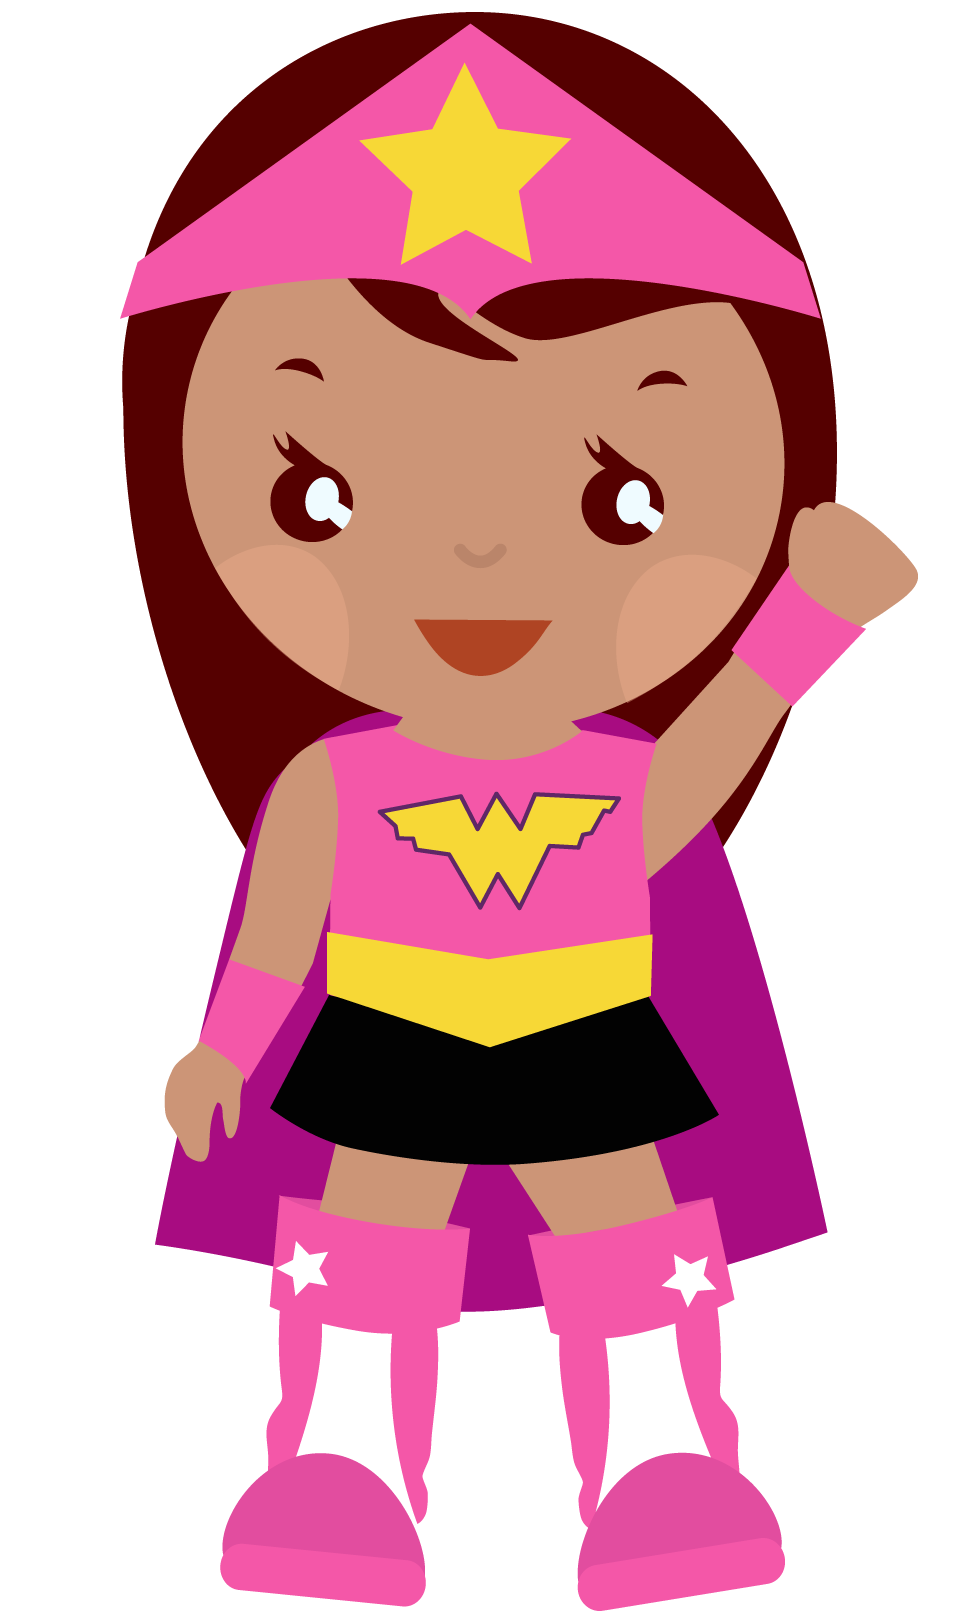 Pink super girl clipart picture freeuse library Pink super girl clipart - ClipartFest picture freeuse library